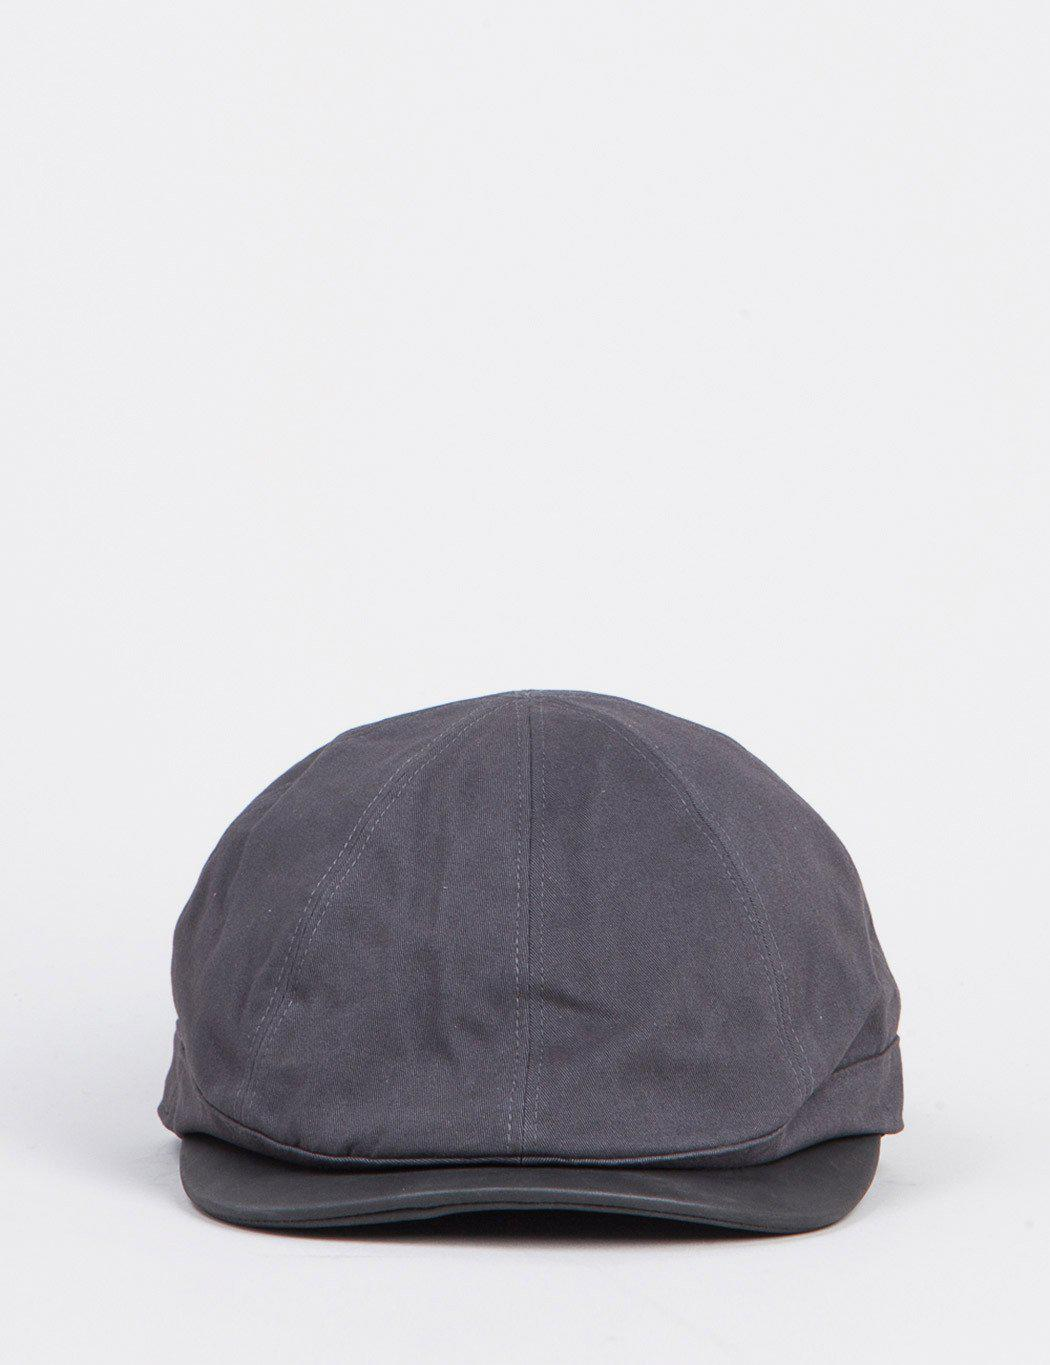 acb9c2d4 Bailey of Hollywood Bailey Rodis Leather Peak Flat Cap in Gray for ...